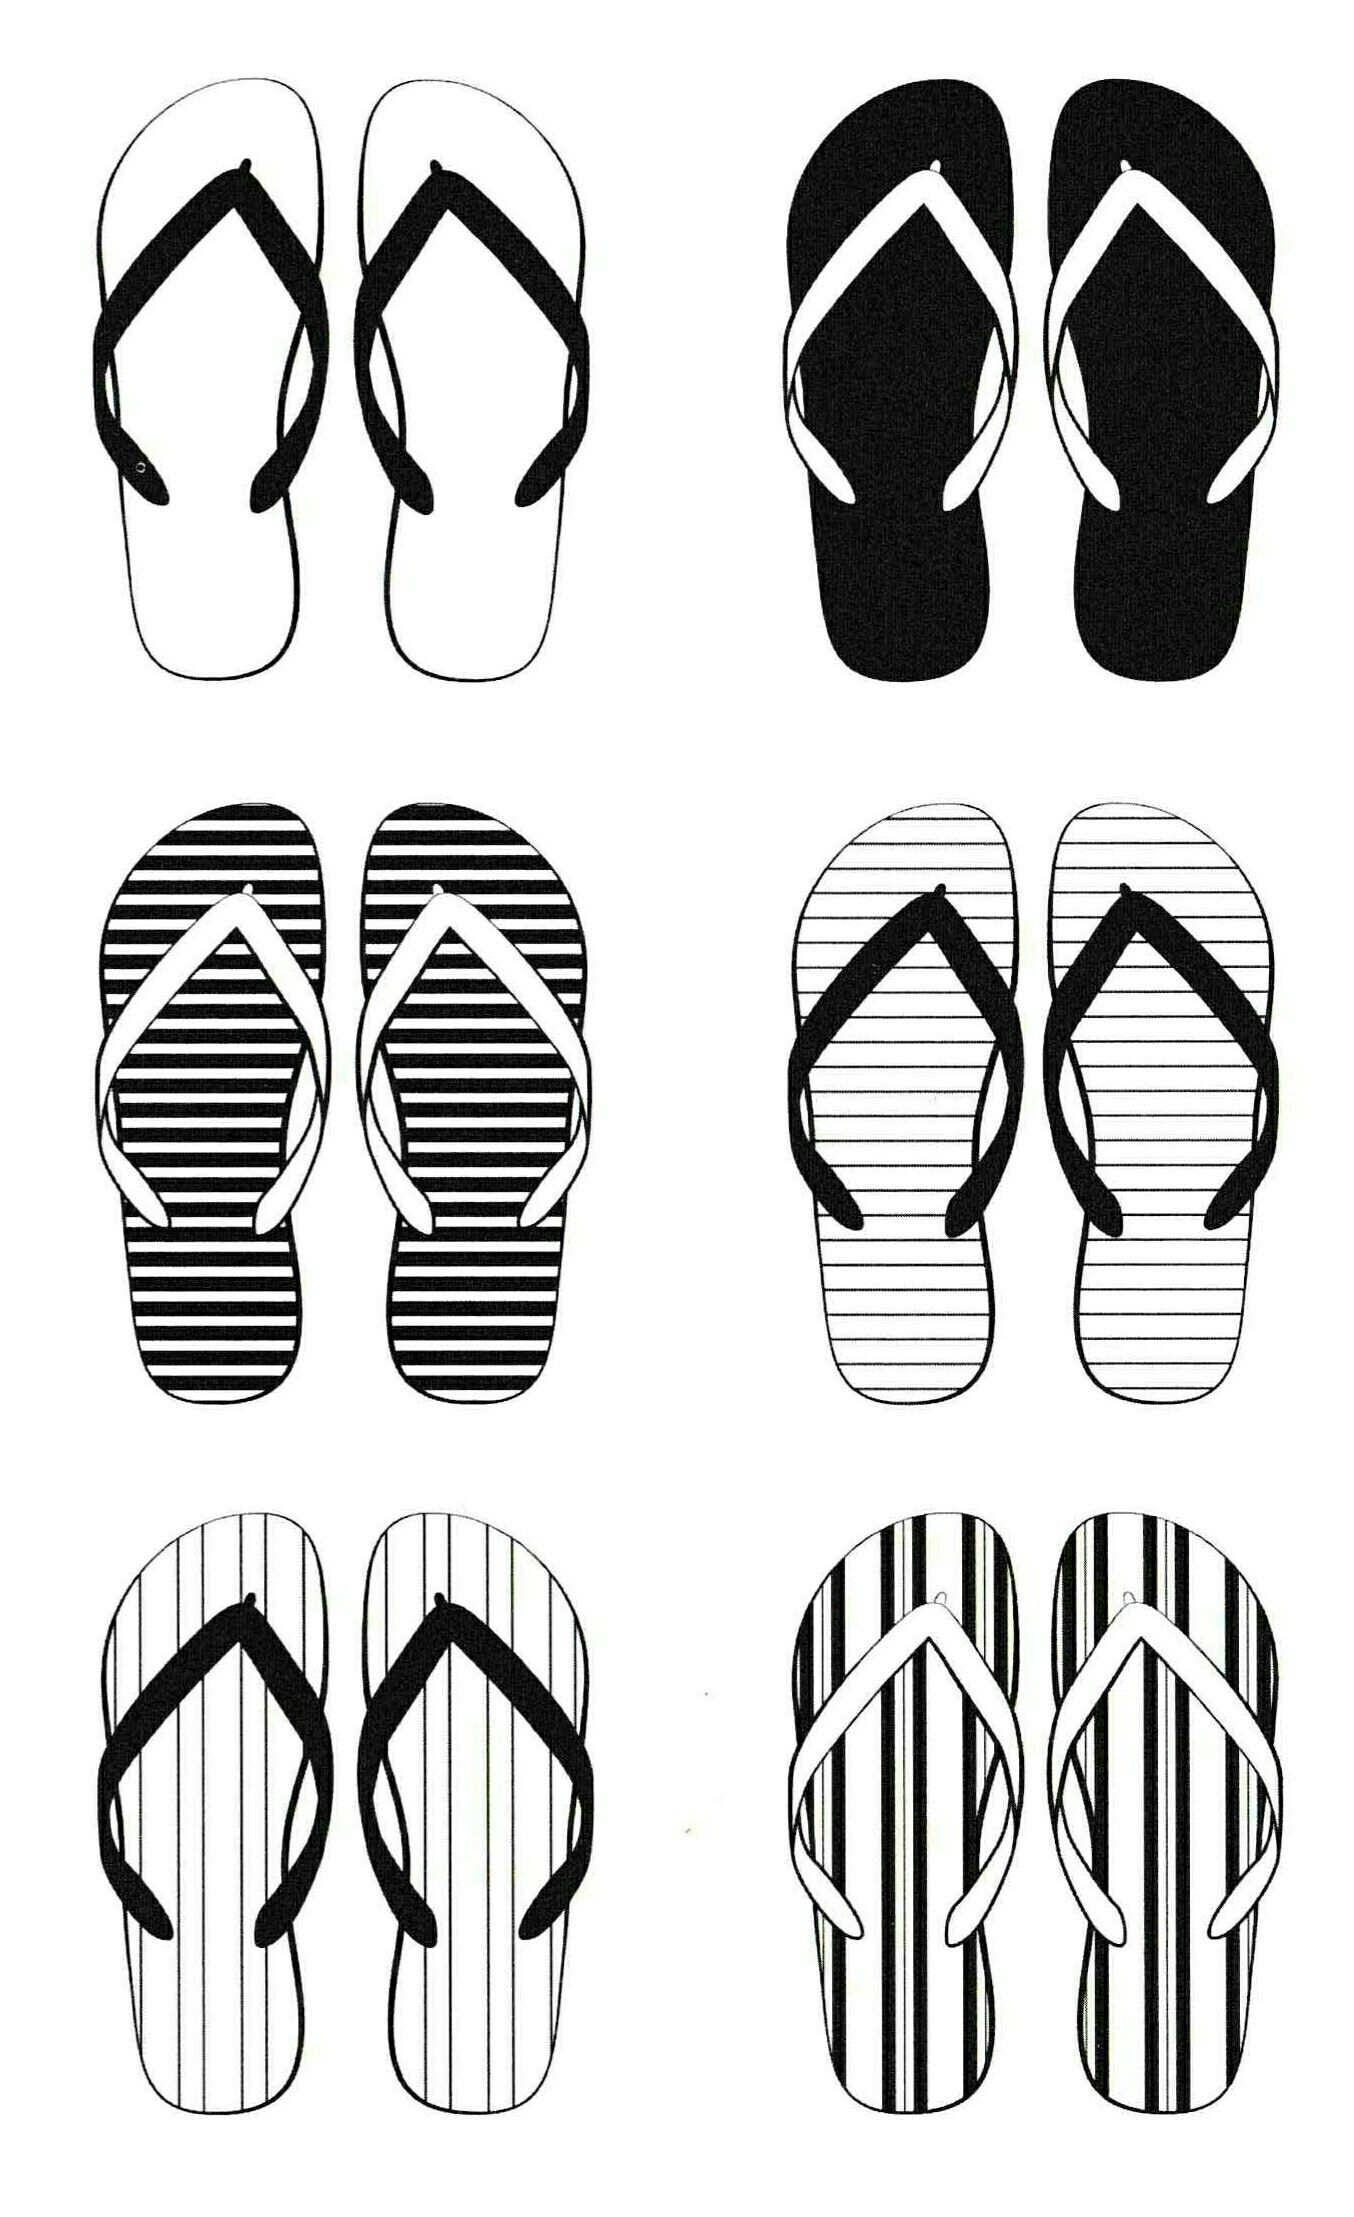 Pin By Kristyna Vinicka On Omalovanky Flip Flop Images Collection Flip Flop Shoes